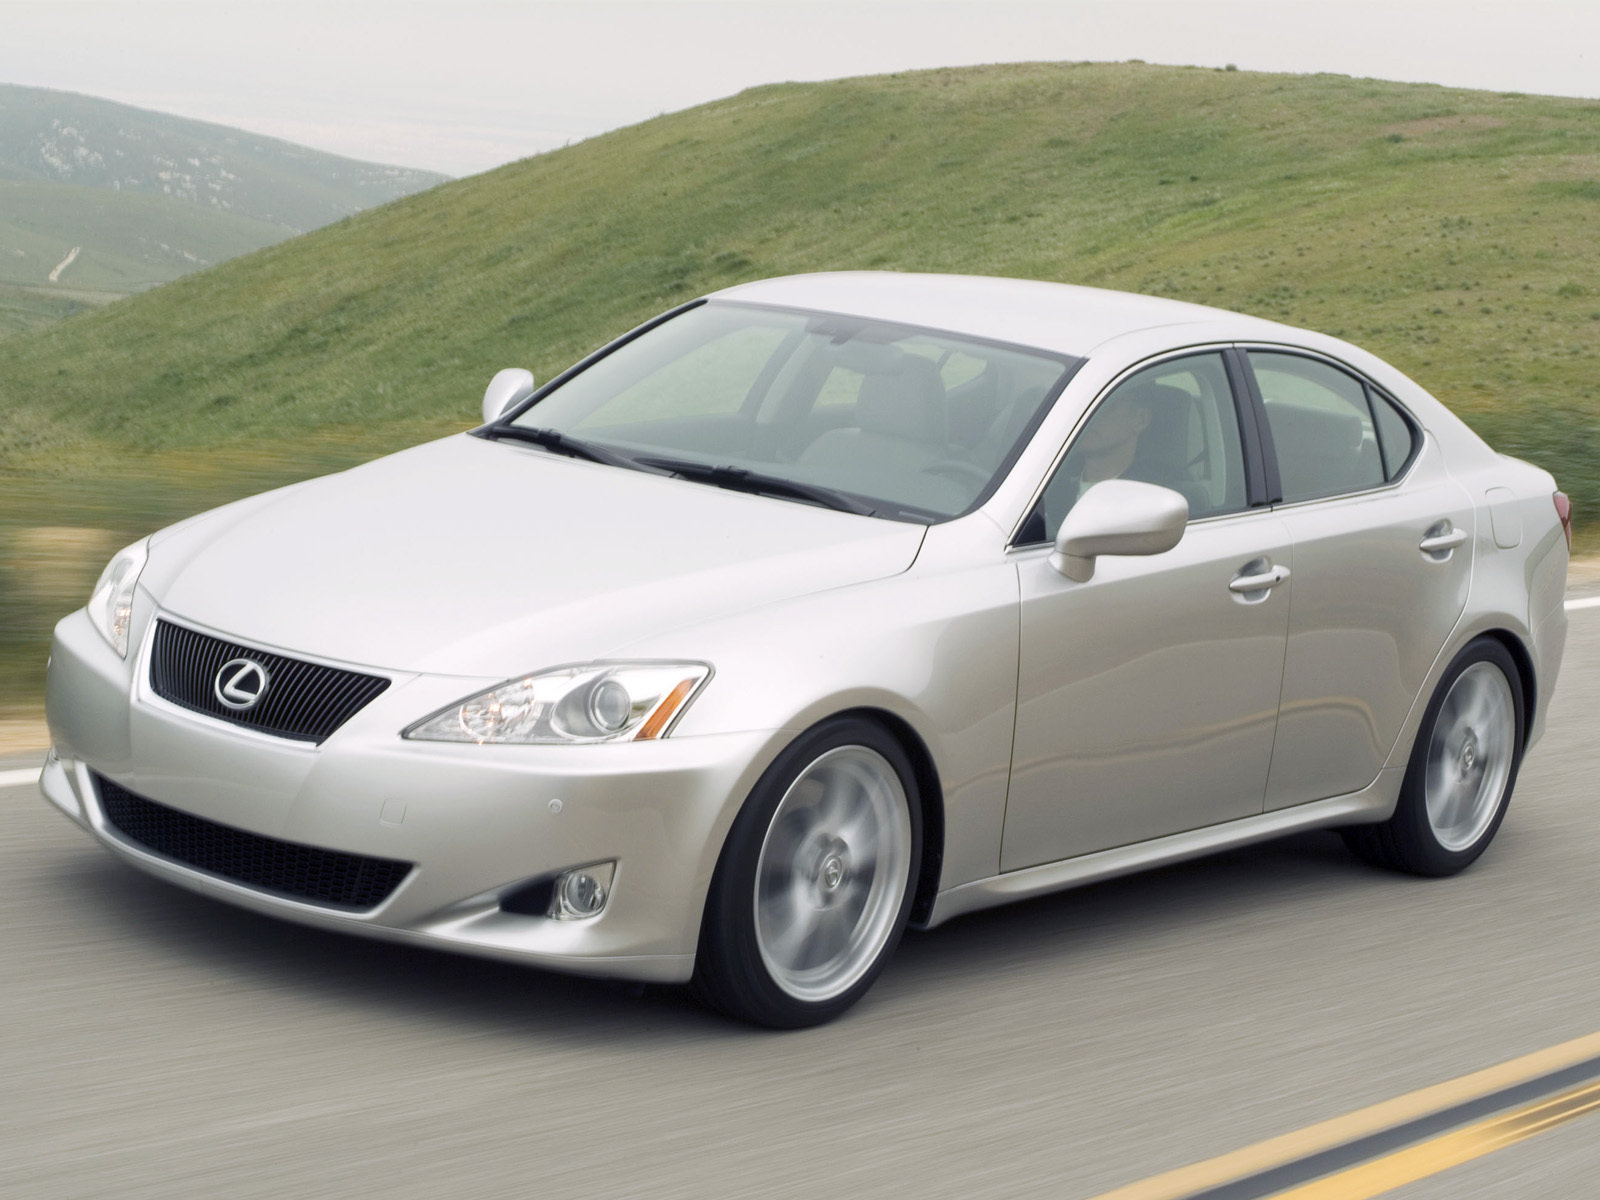 2006 lexus is350 picture 61985 car review top speed. Black Bedroom Furniture Sets. Home Design Ideas